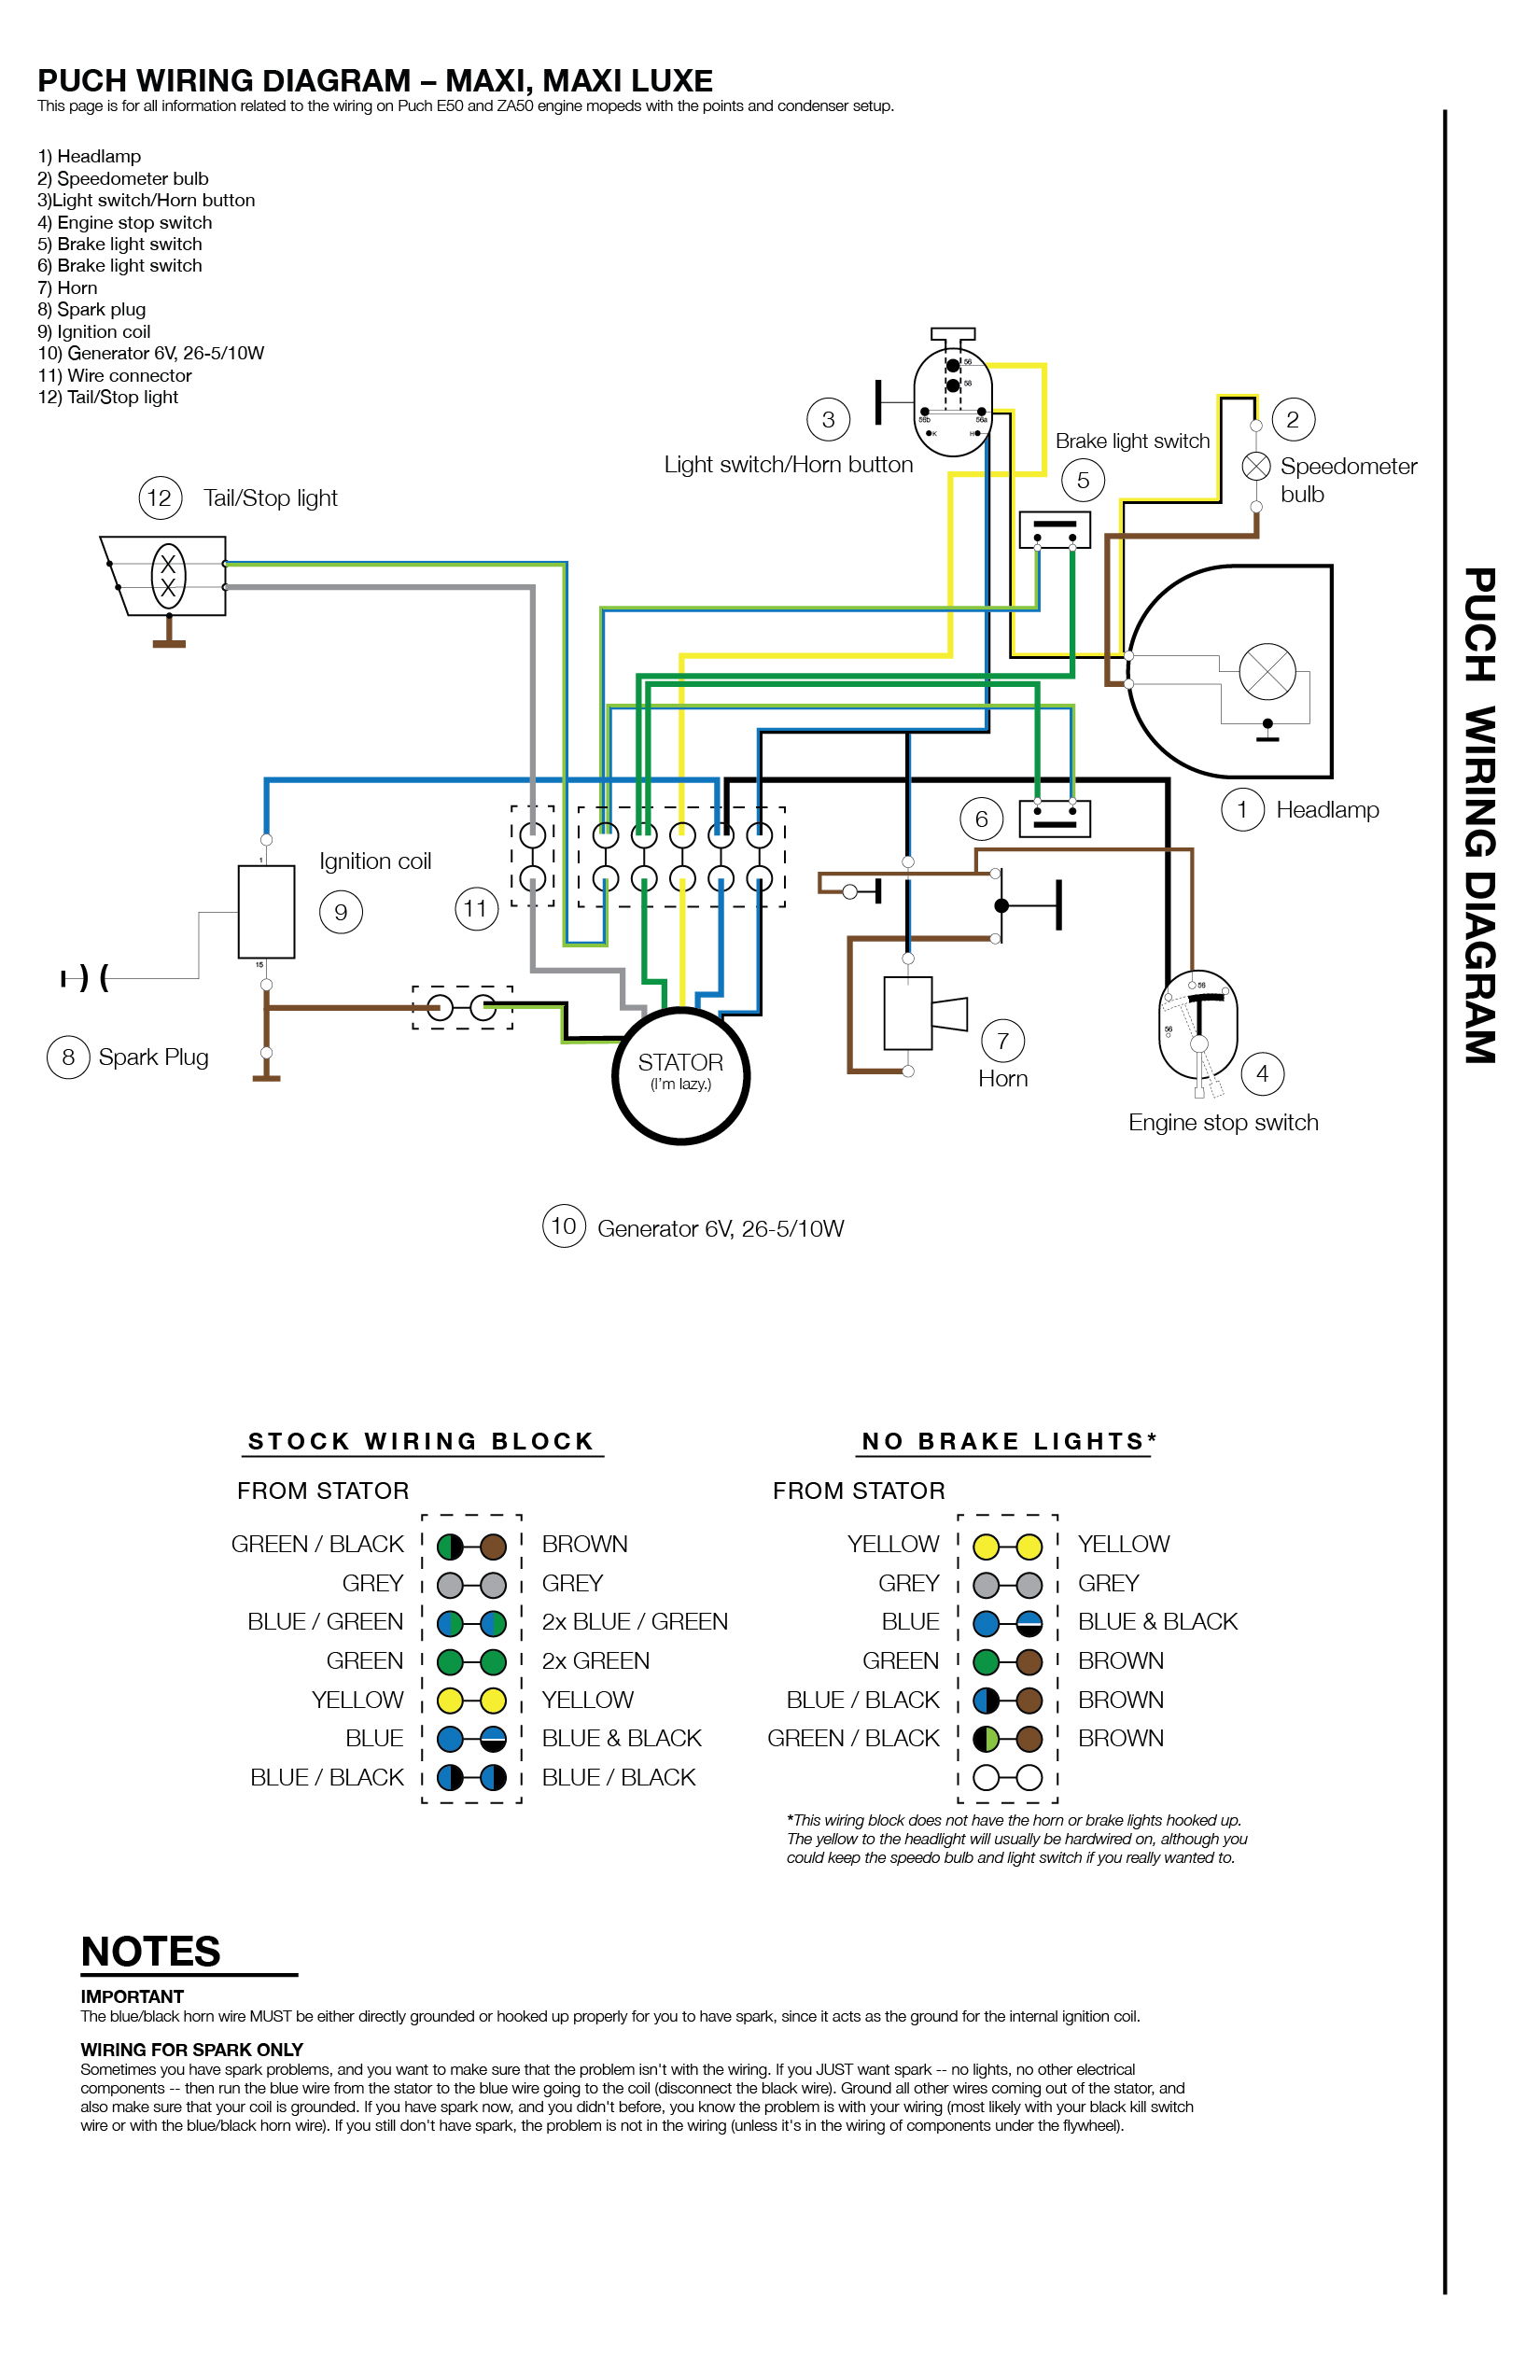 Puch_wiring 02 puch wiring moped wiki 1977 puch maxi wiring diagram at arjmand.co